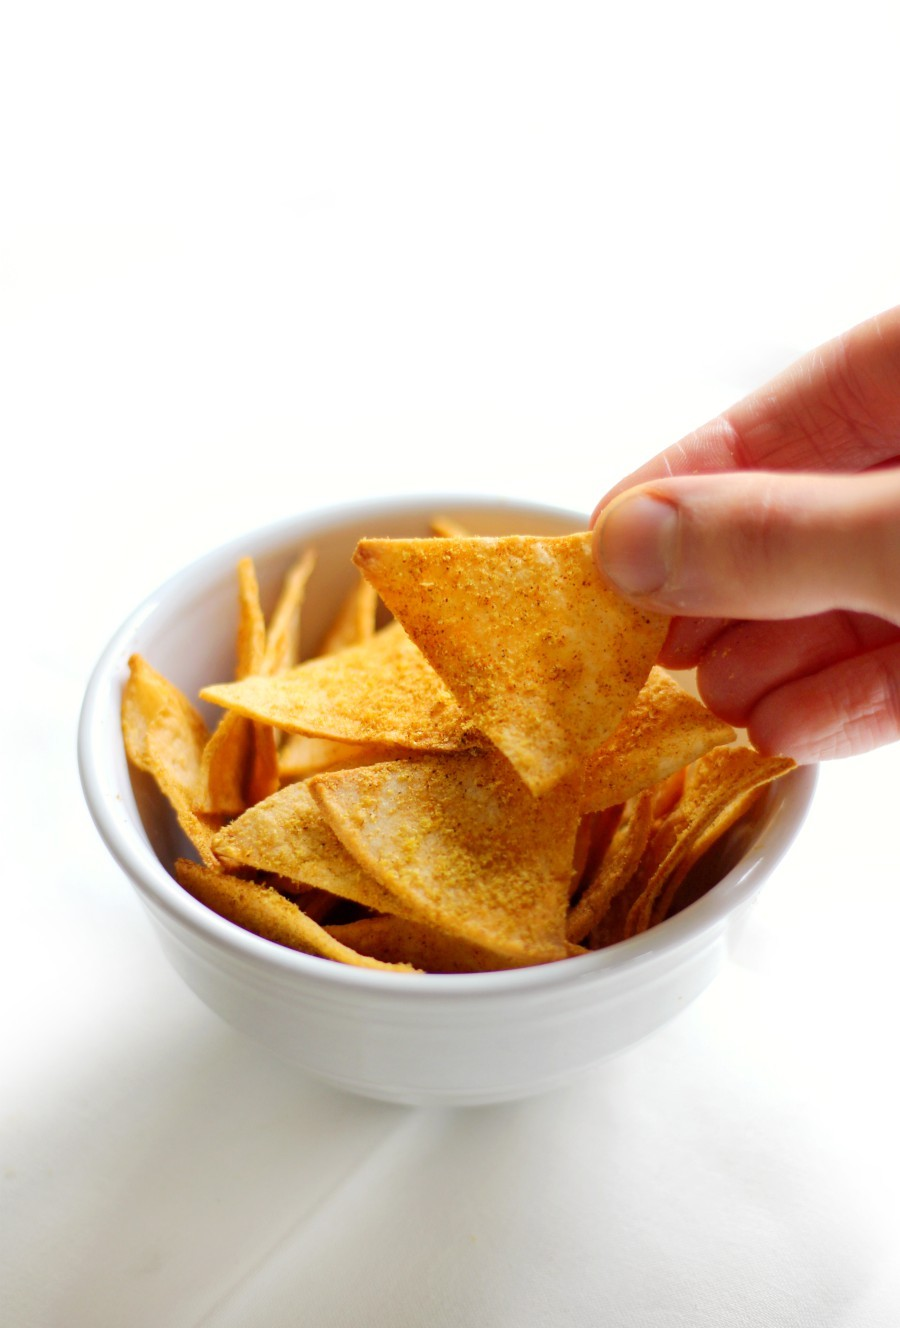 eating-nacho-cheese-vegan-doritos-bowl